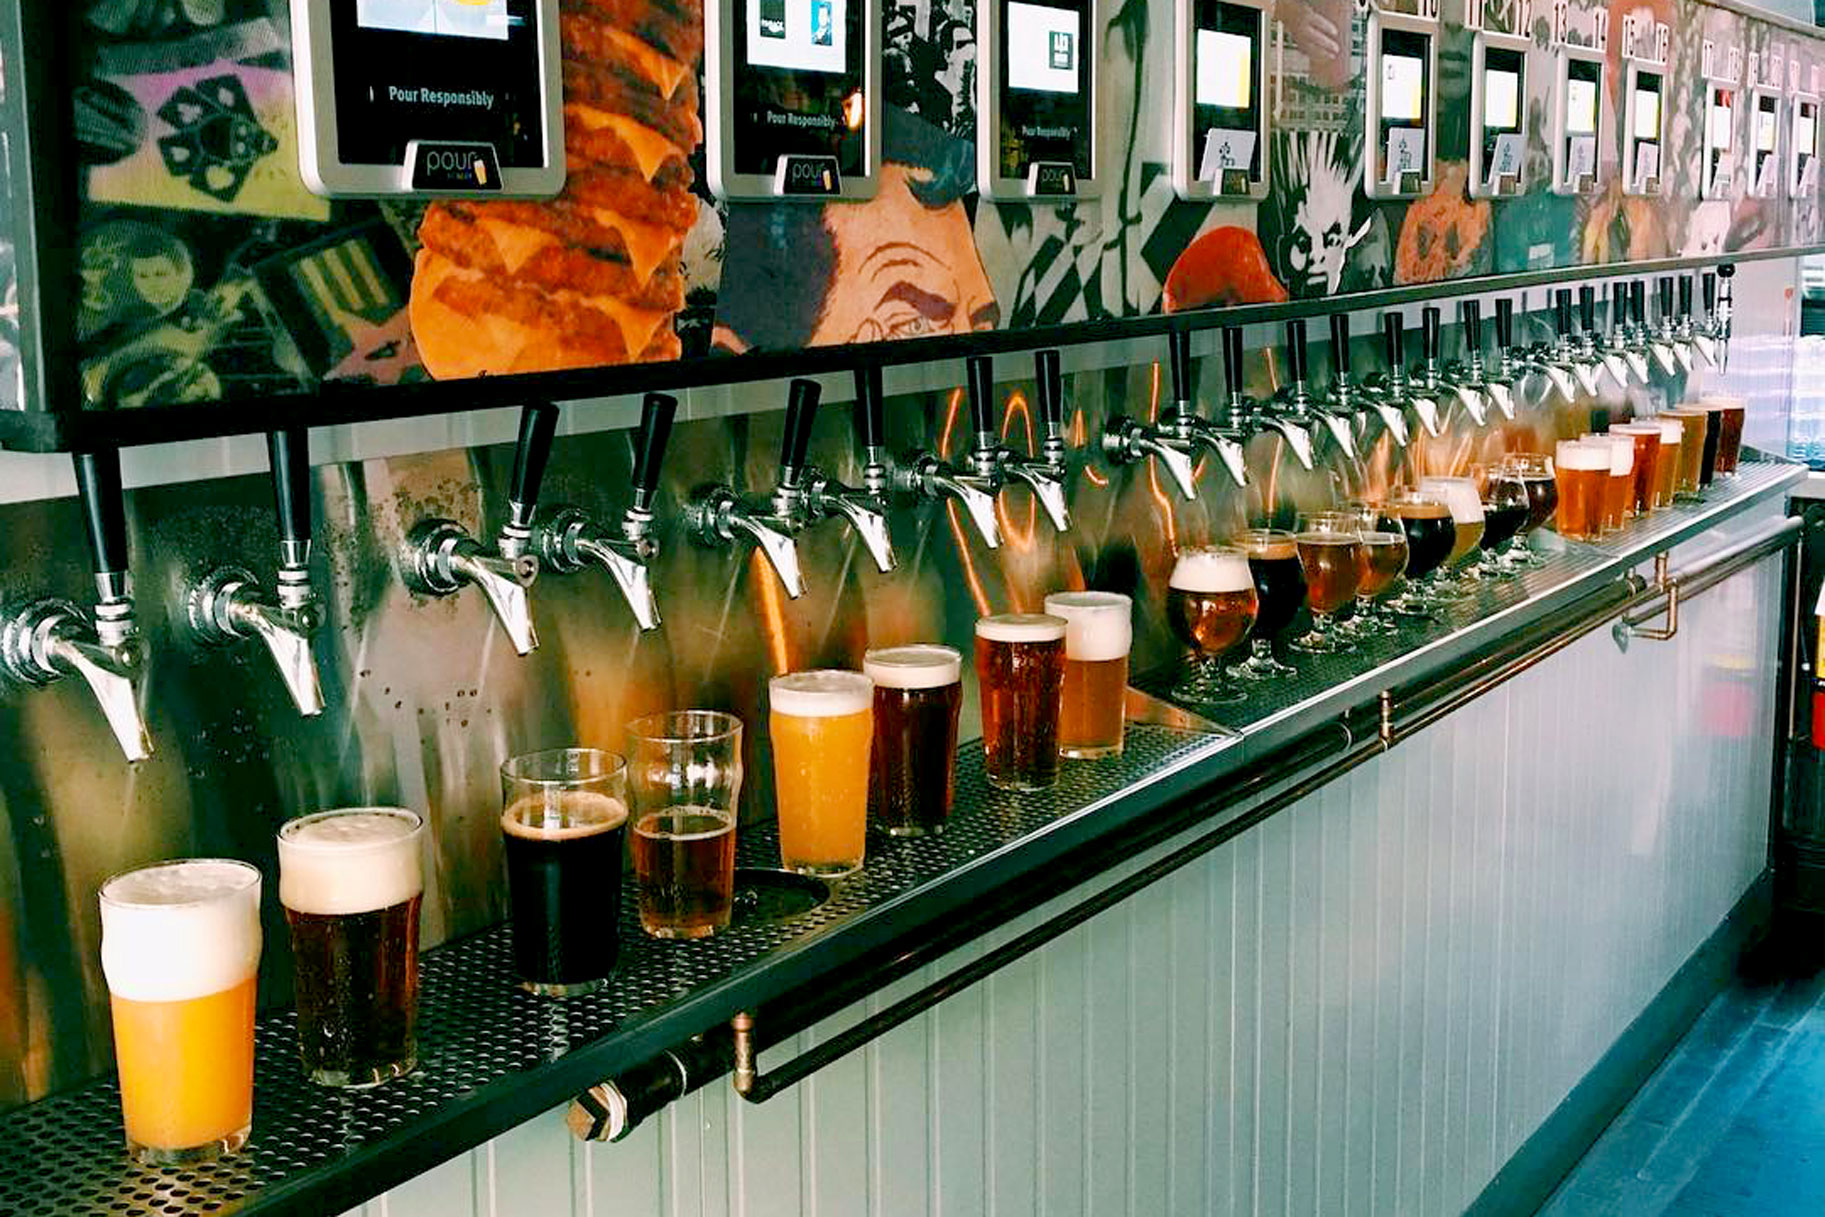 This Atm Dispenses 24 Different Types Of Beer Not Money The Feast